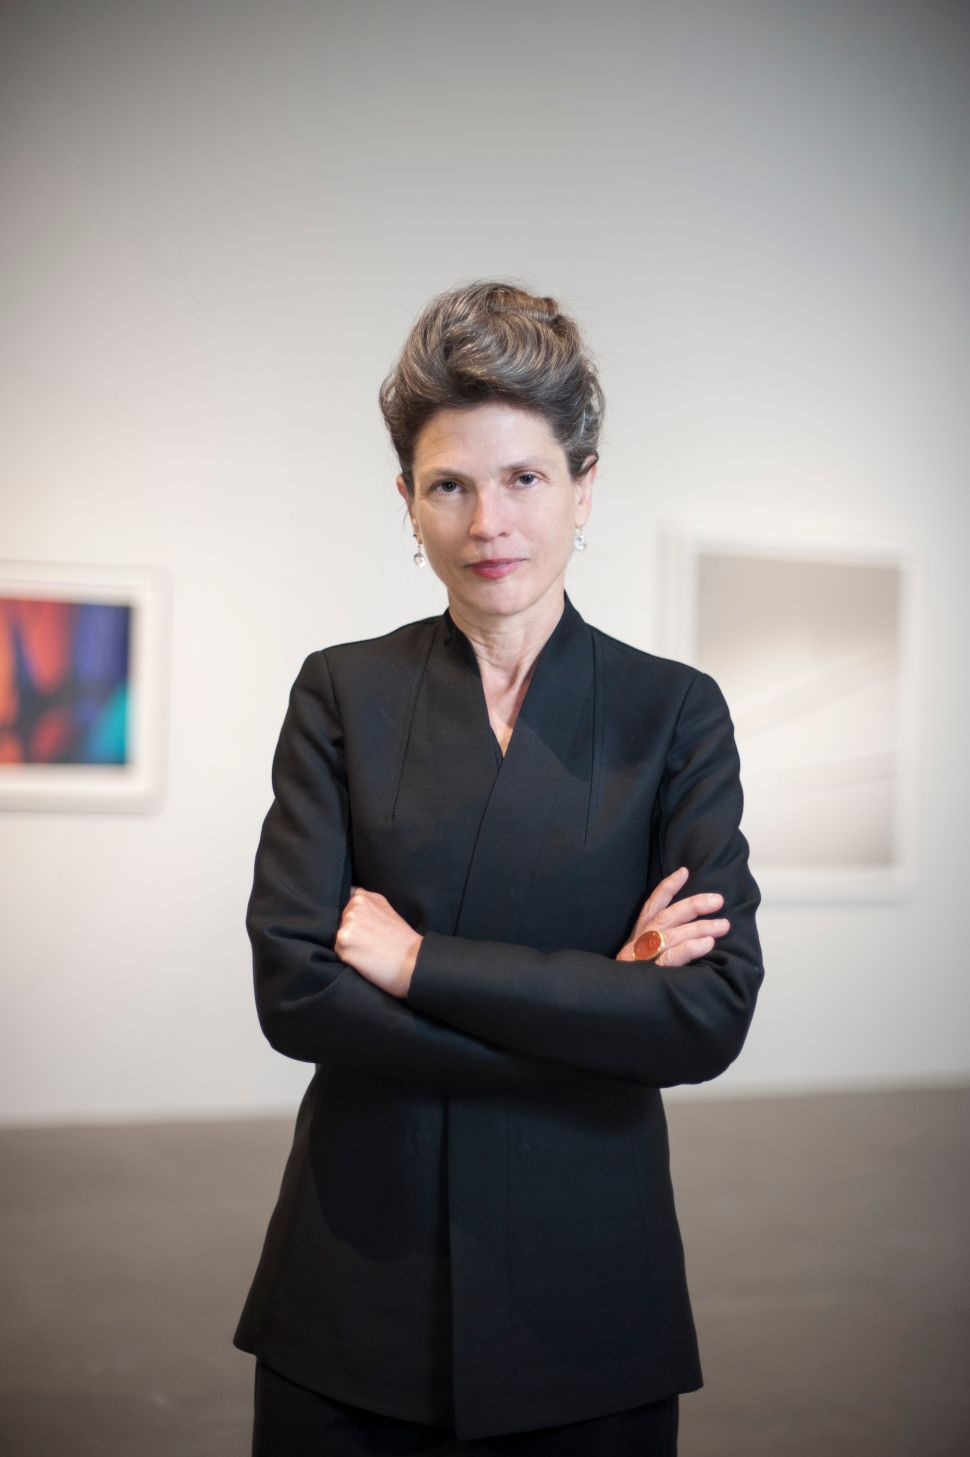 Ingrid Schaffner to Curate the 57th Carnegie International in 2018